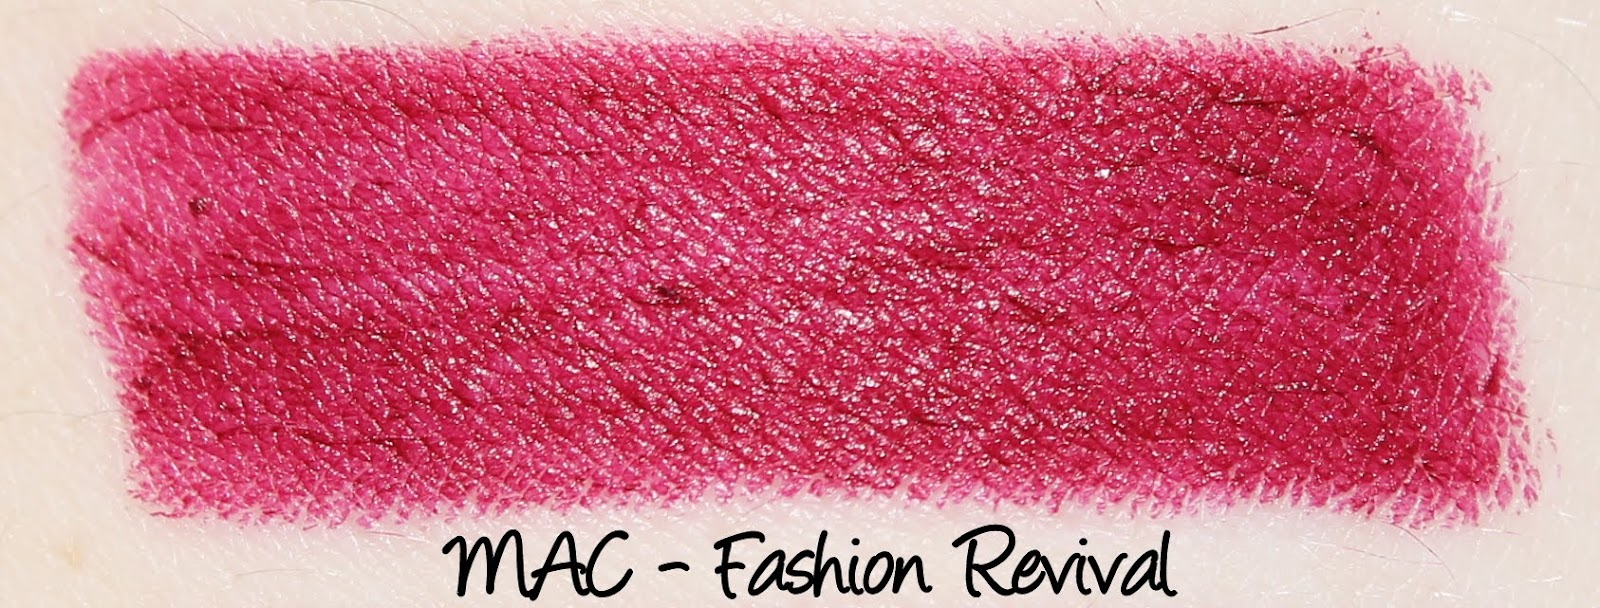 MAC Fashion Revival Lipstick Swatches & Review